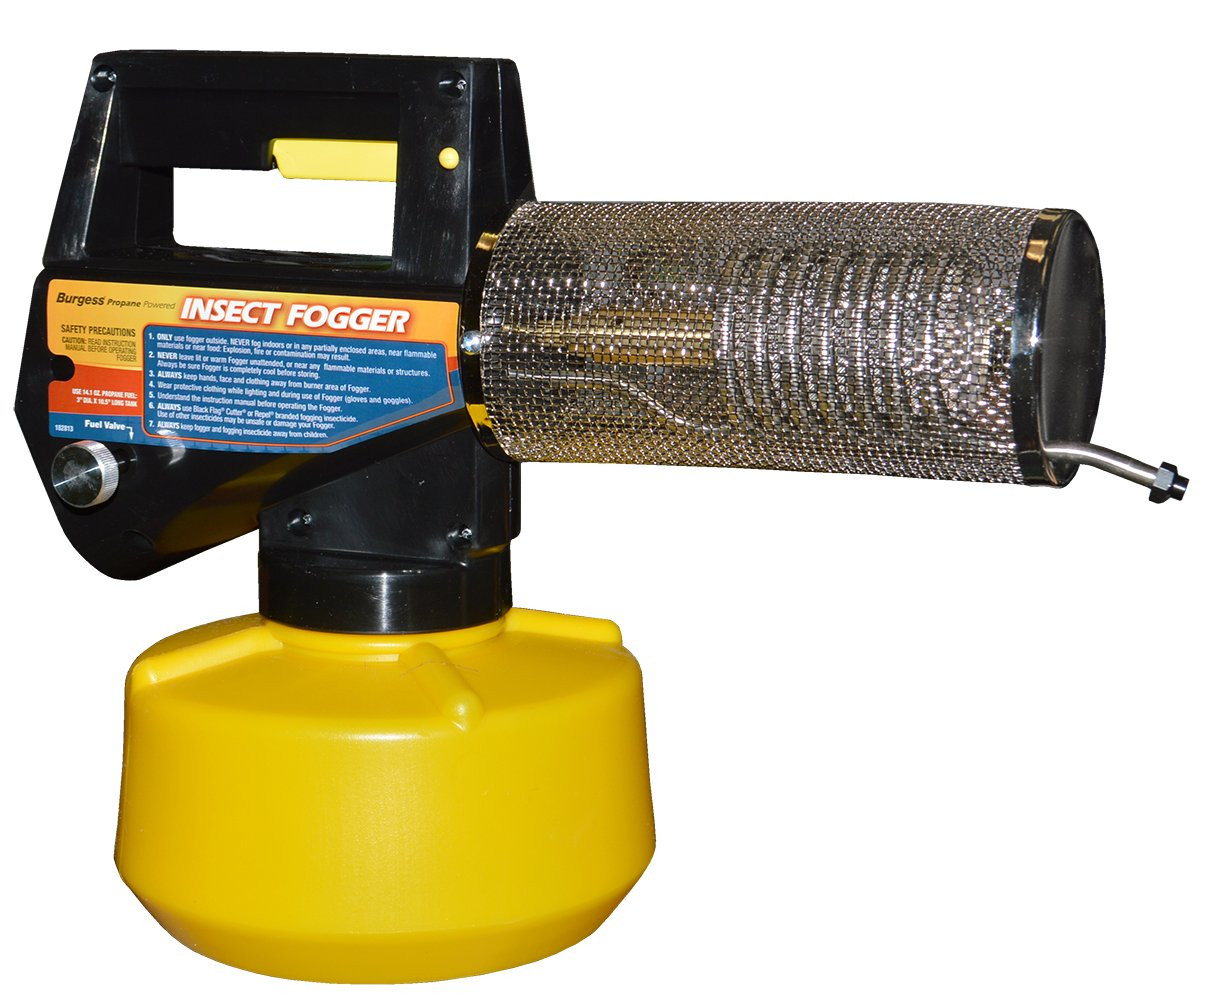 Backyard Mosquito Foggers  Burgess 1443 Propane Insect Fogger for Fast and Effective